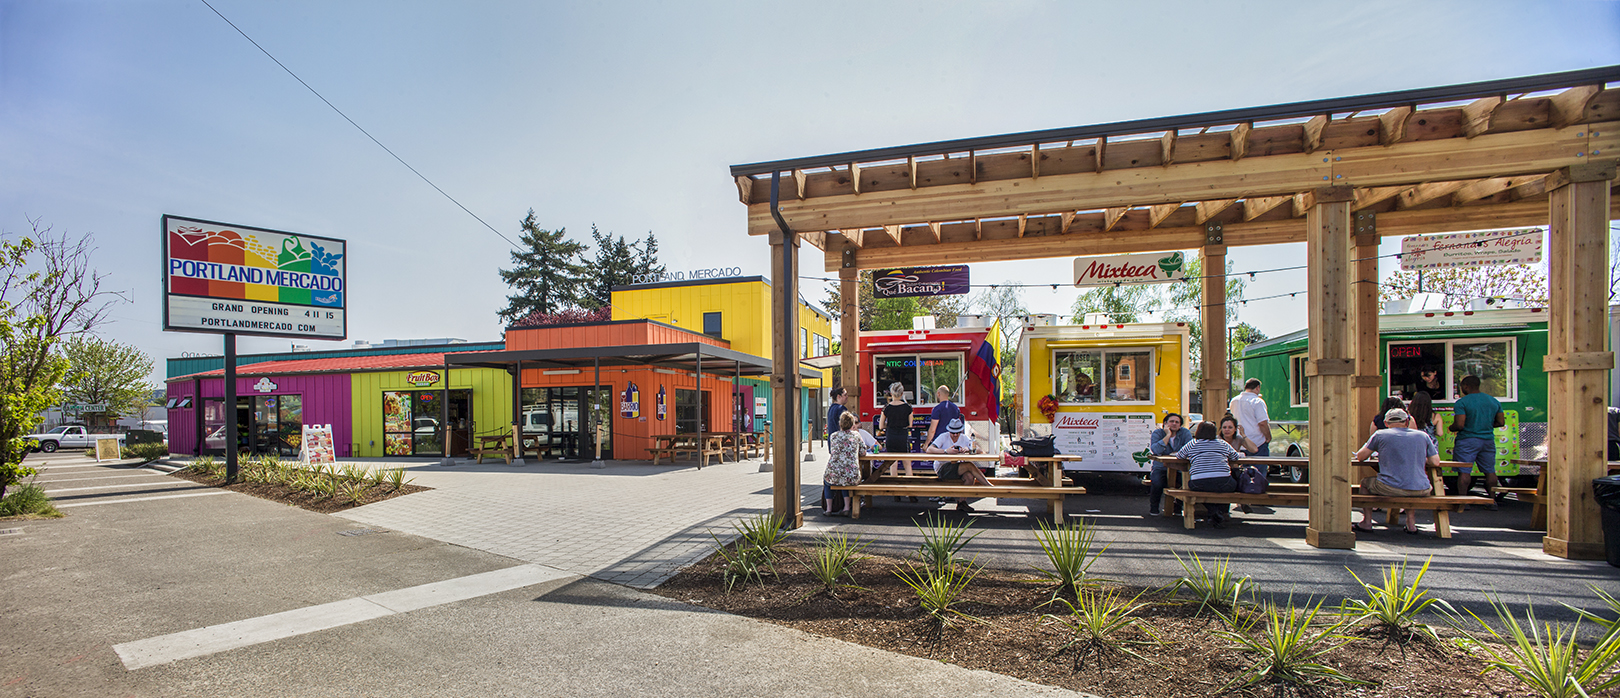 The Portland Mercado is Portland, Oregon's first Latino public market.This is an example of food-oriented development.